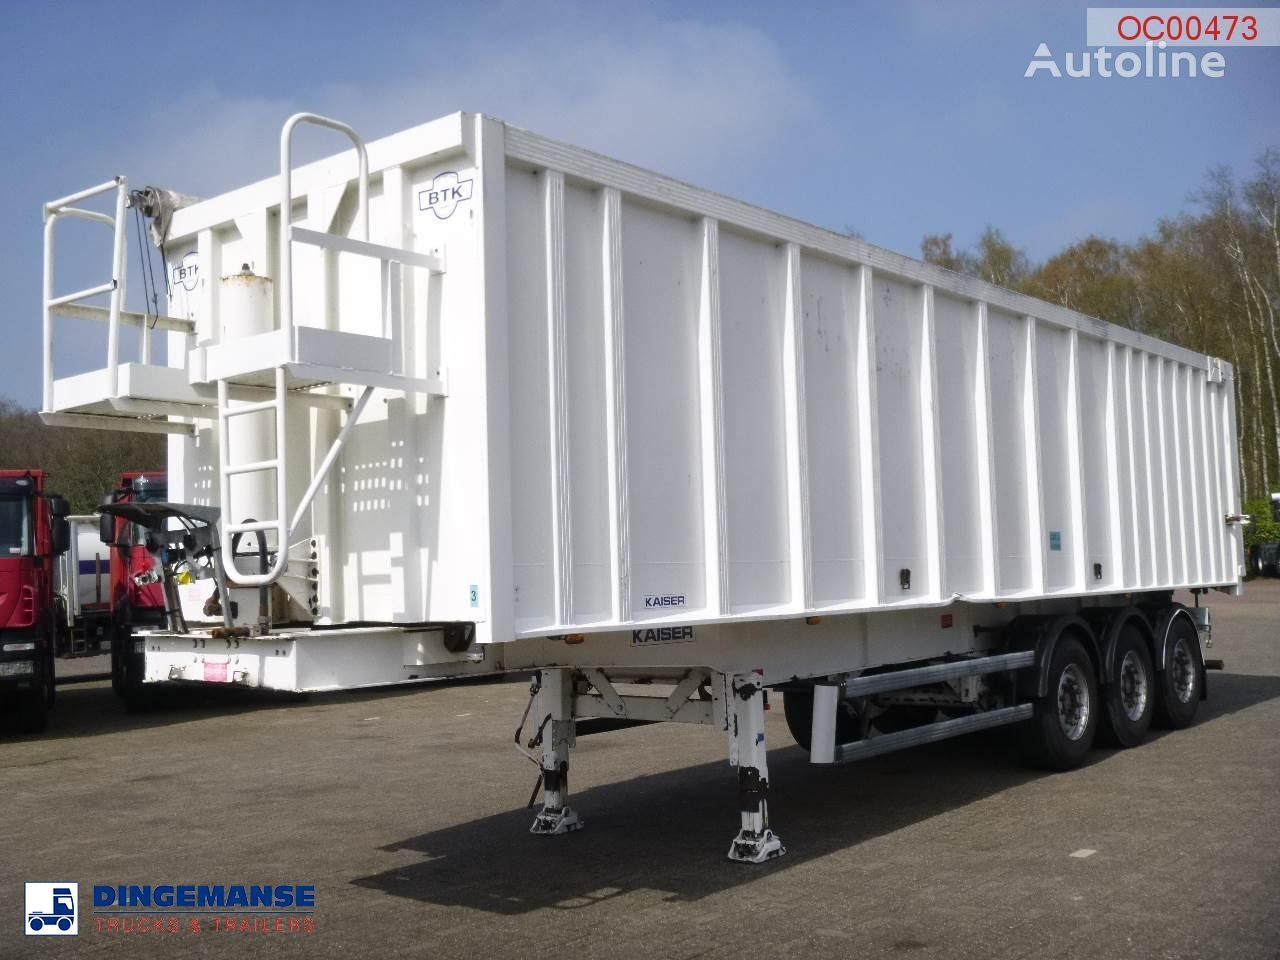 ROBUSTE Tipper alu / chssis steel 49 m3 /waterclosed body tipper semi-trailer